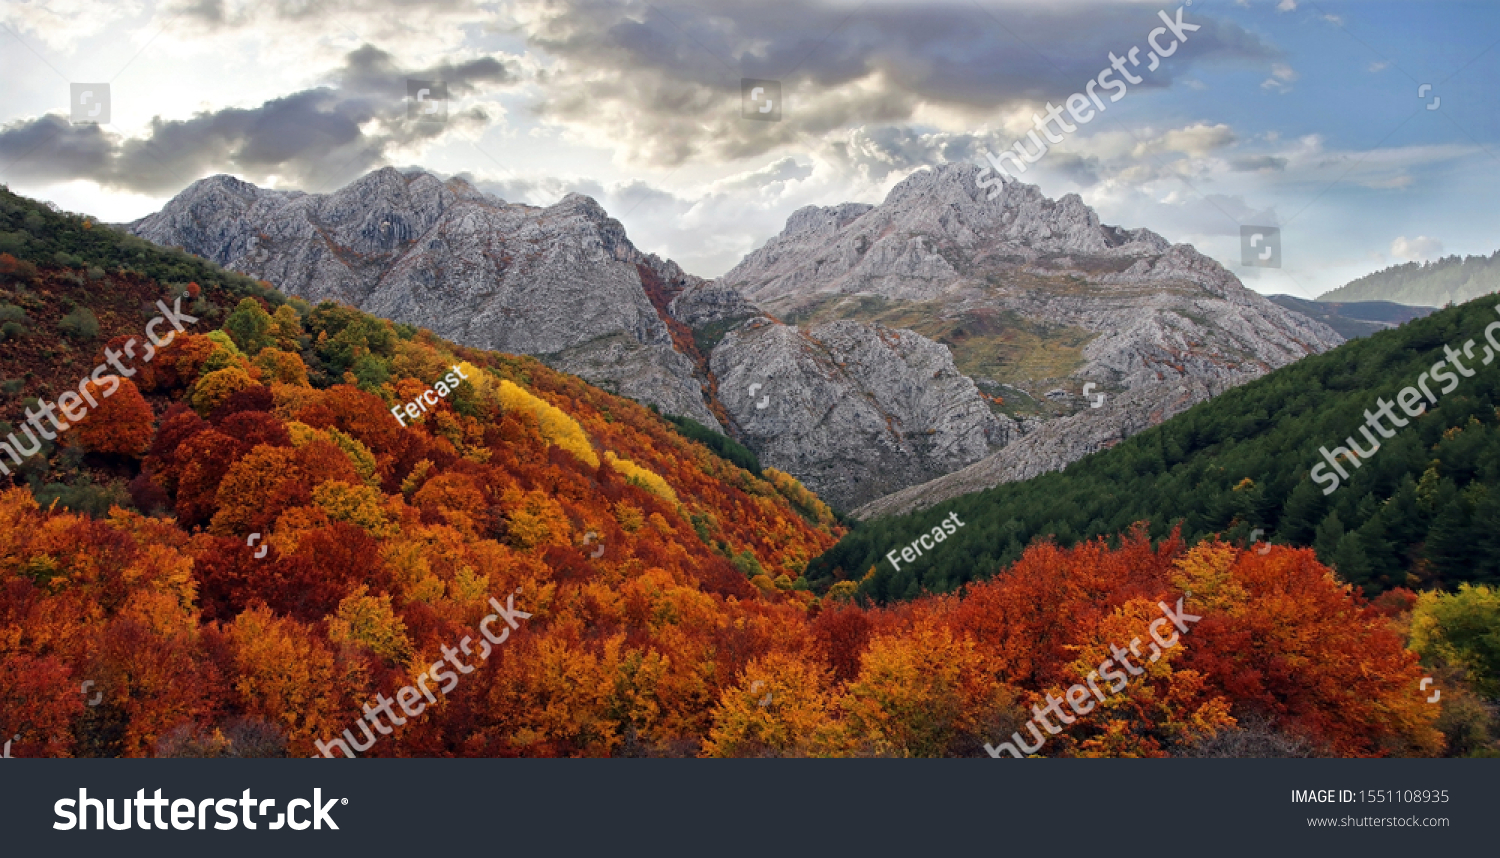 Stunning autumn landscape in a cloudy day. A colorful red and yellow beech forest contrasts with a green pine tree forest. In the background there's a tall limestone mountain. León, Spain.